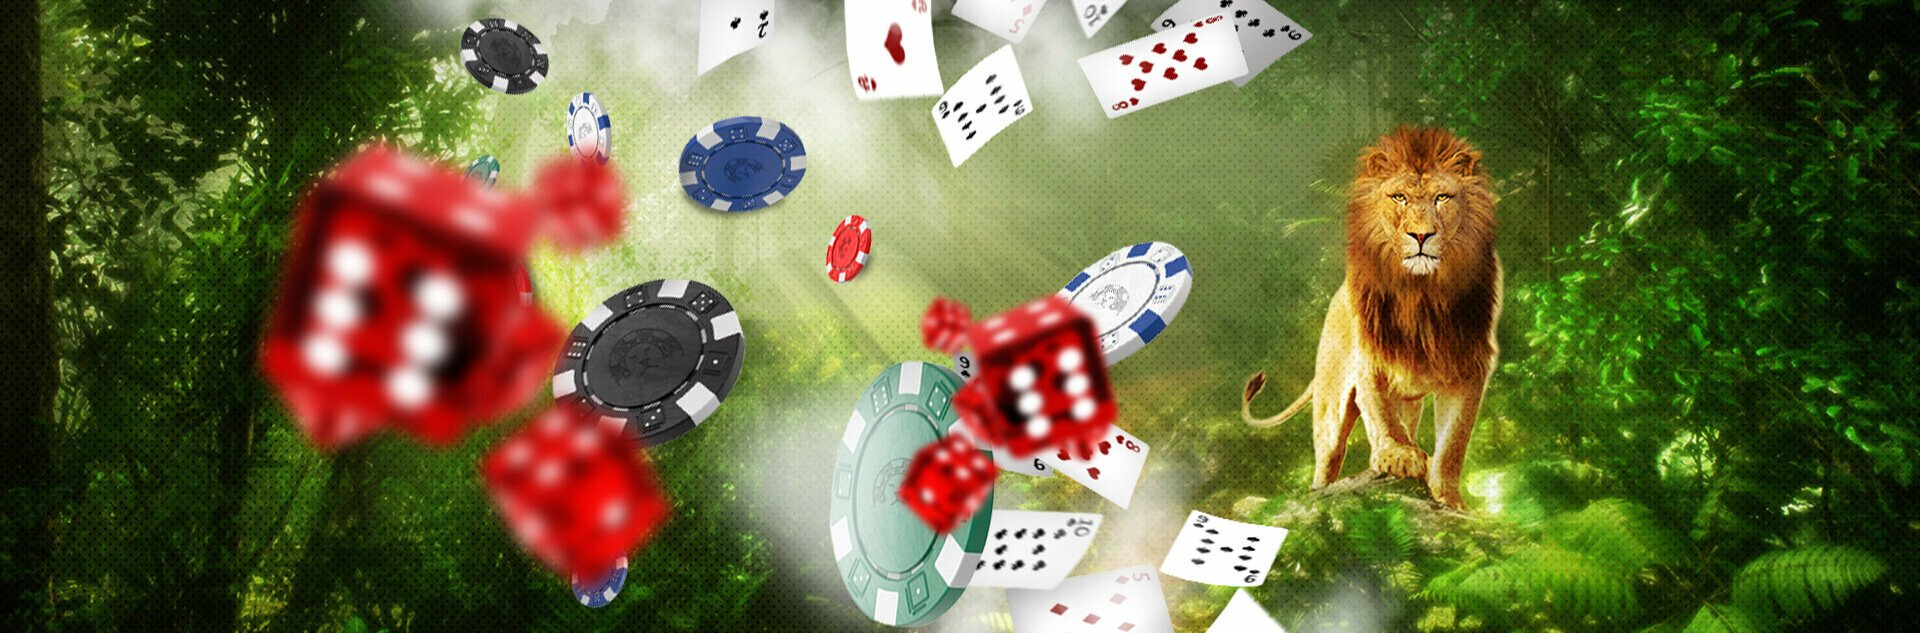 Casimba casino review UK